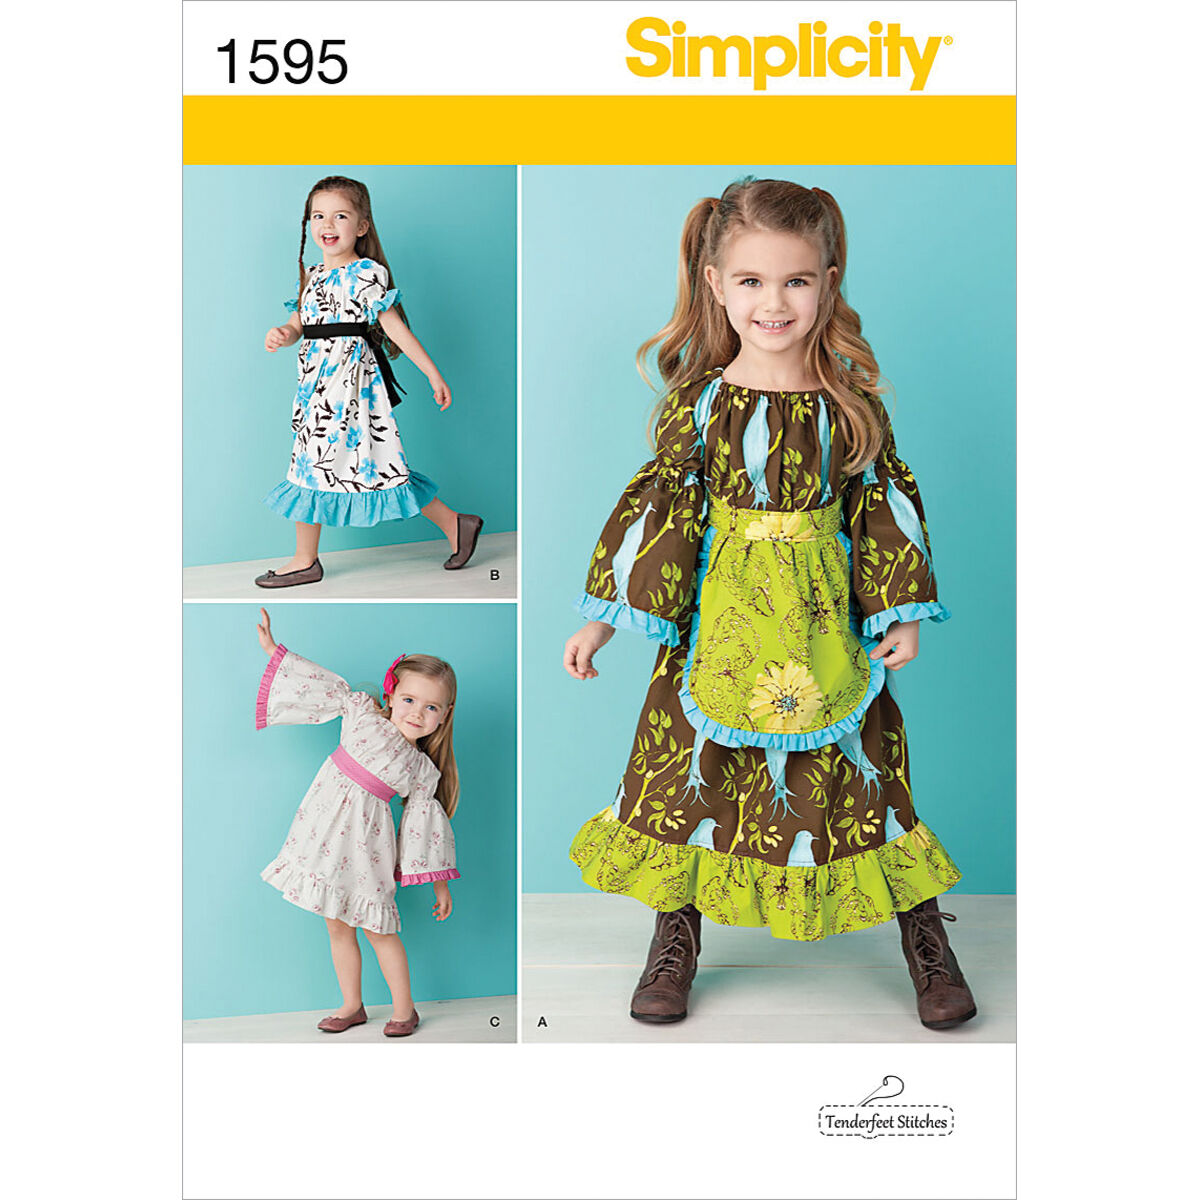 60s 70s Kids Costumes & Clothing Girls & Boys Simplicity Pattern 1595BB 4 - 5 - 6 - 7 - 8 - Toddlers Dresses $15.95 AT vintagedancer.com